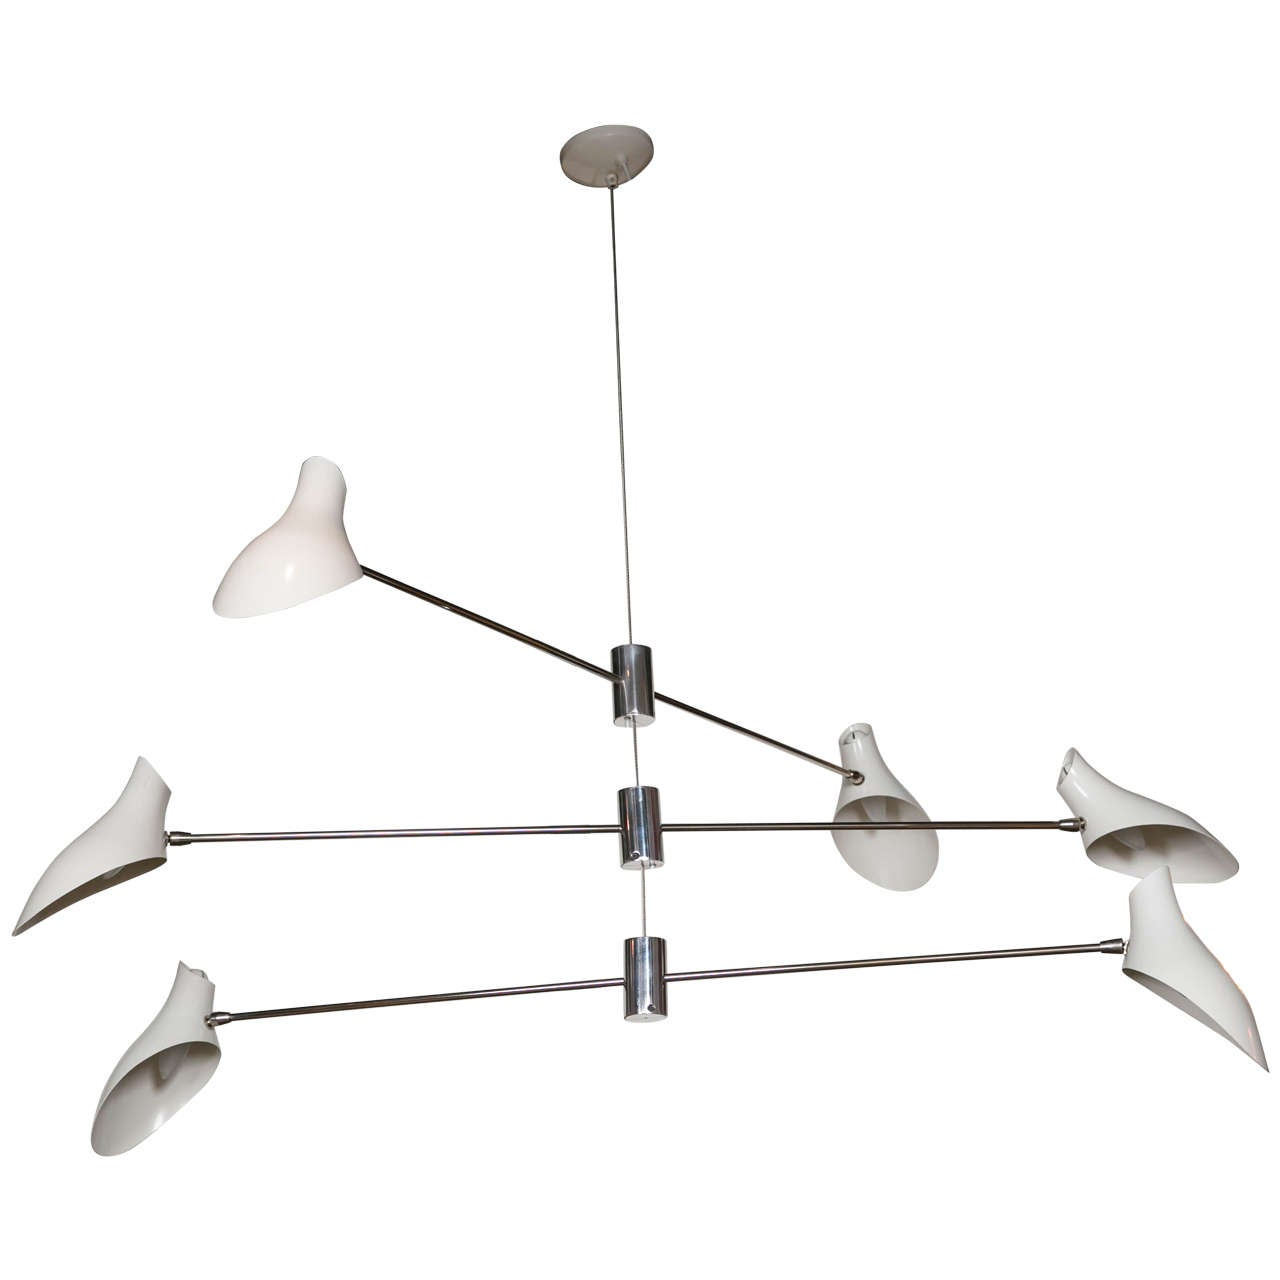 Mobile Chandelier By David Weeks For